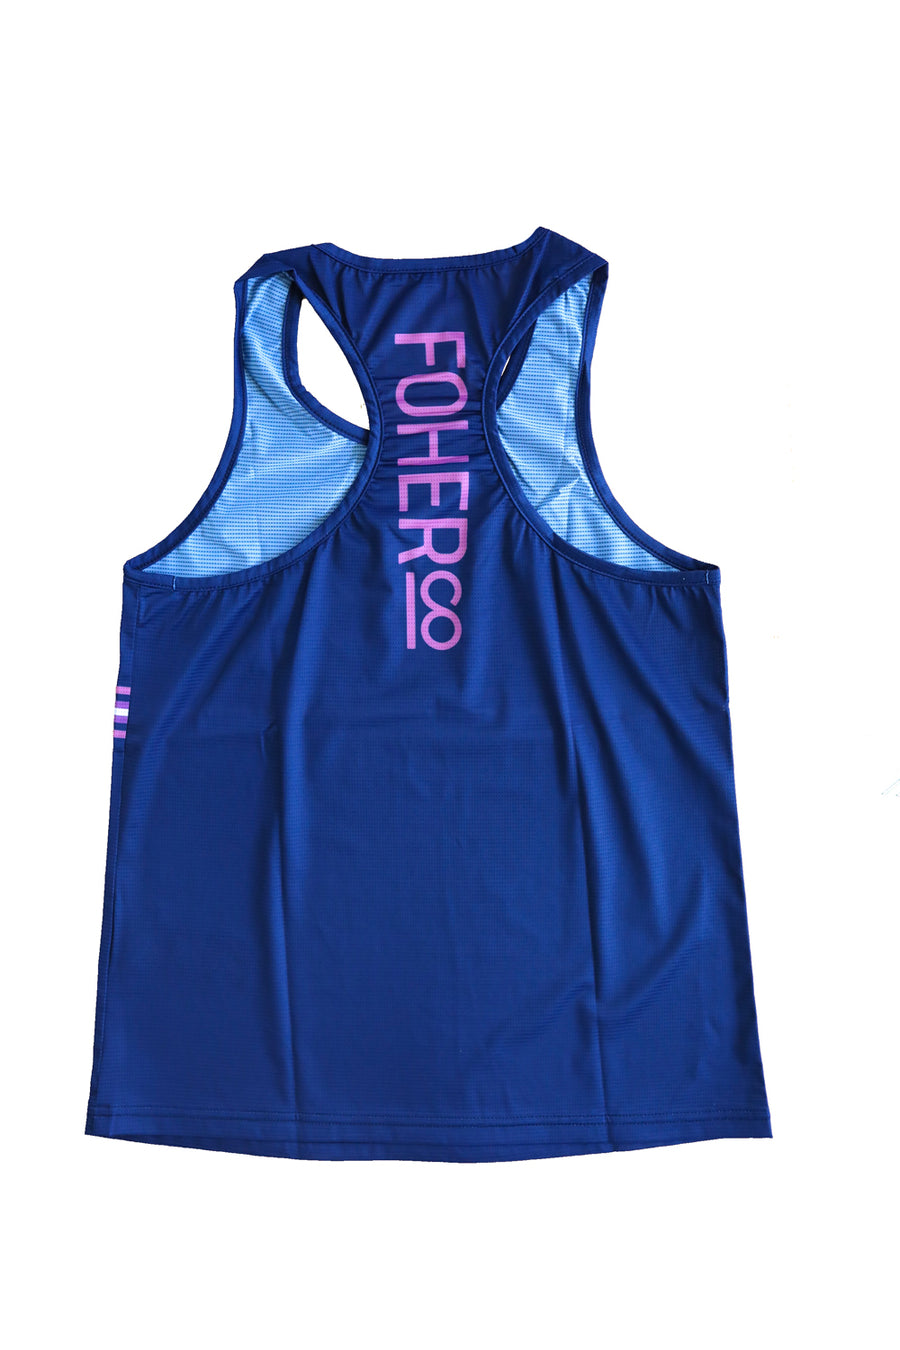 Women's Halcyon Days Run Singlet ARC